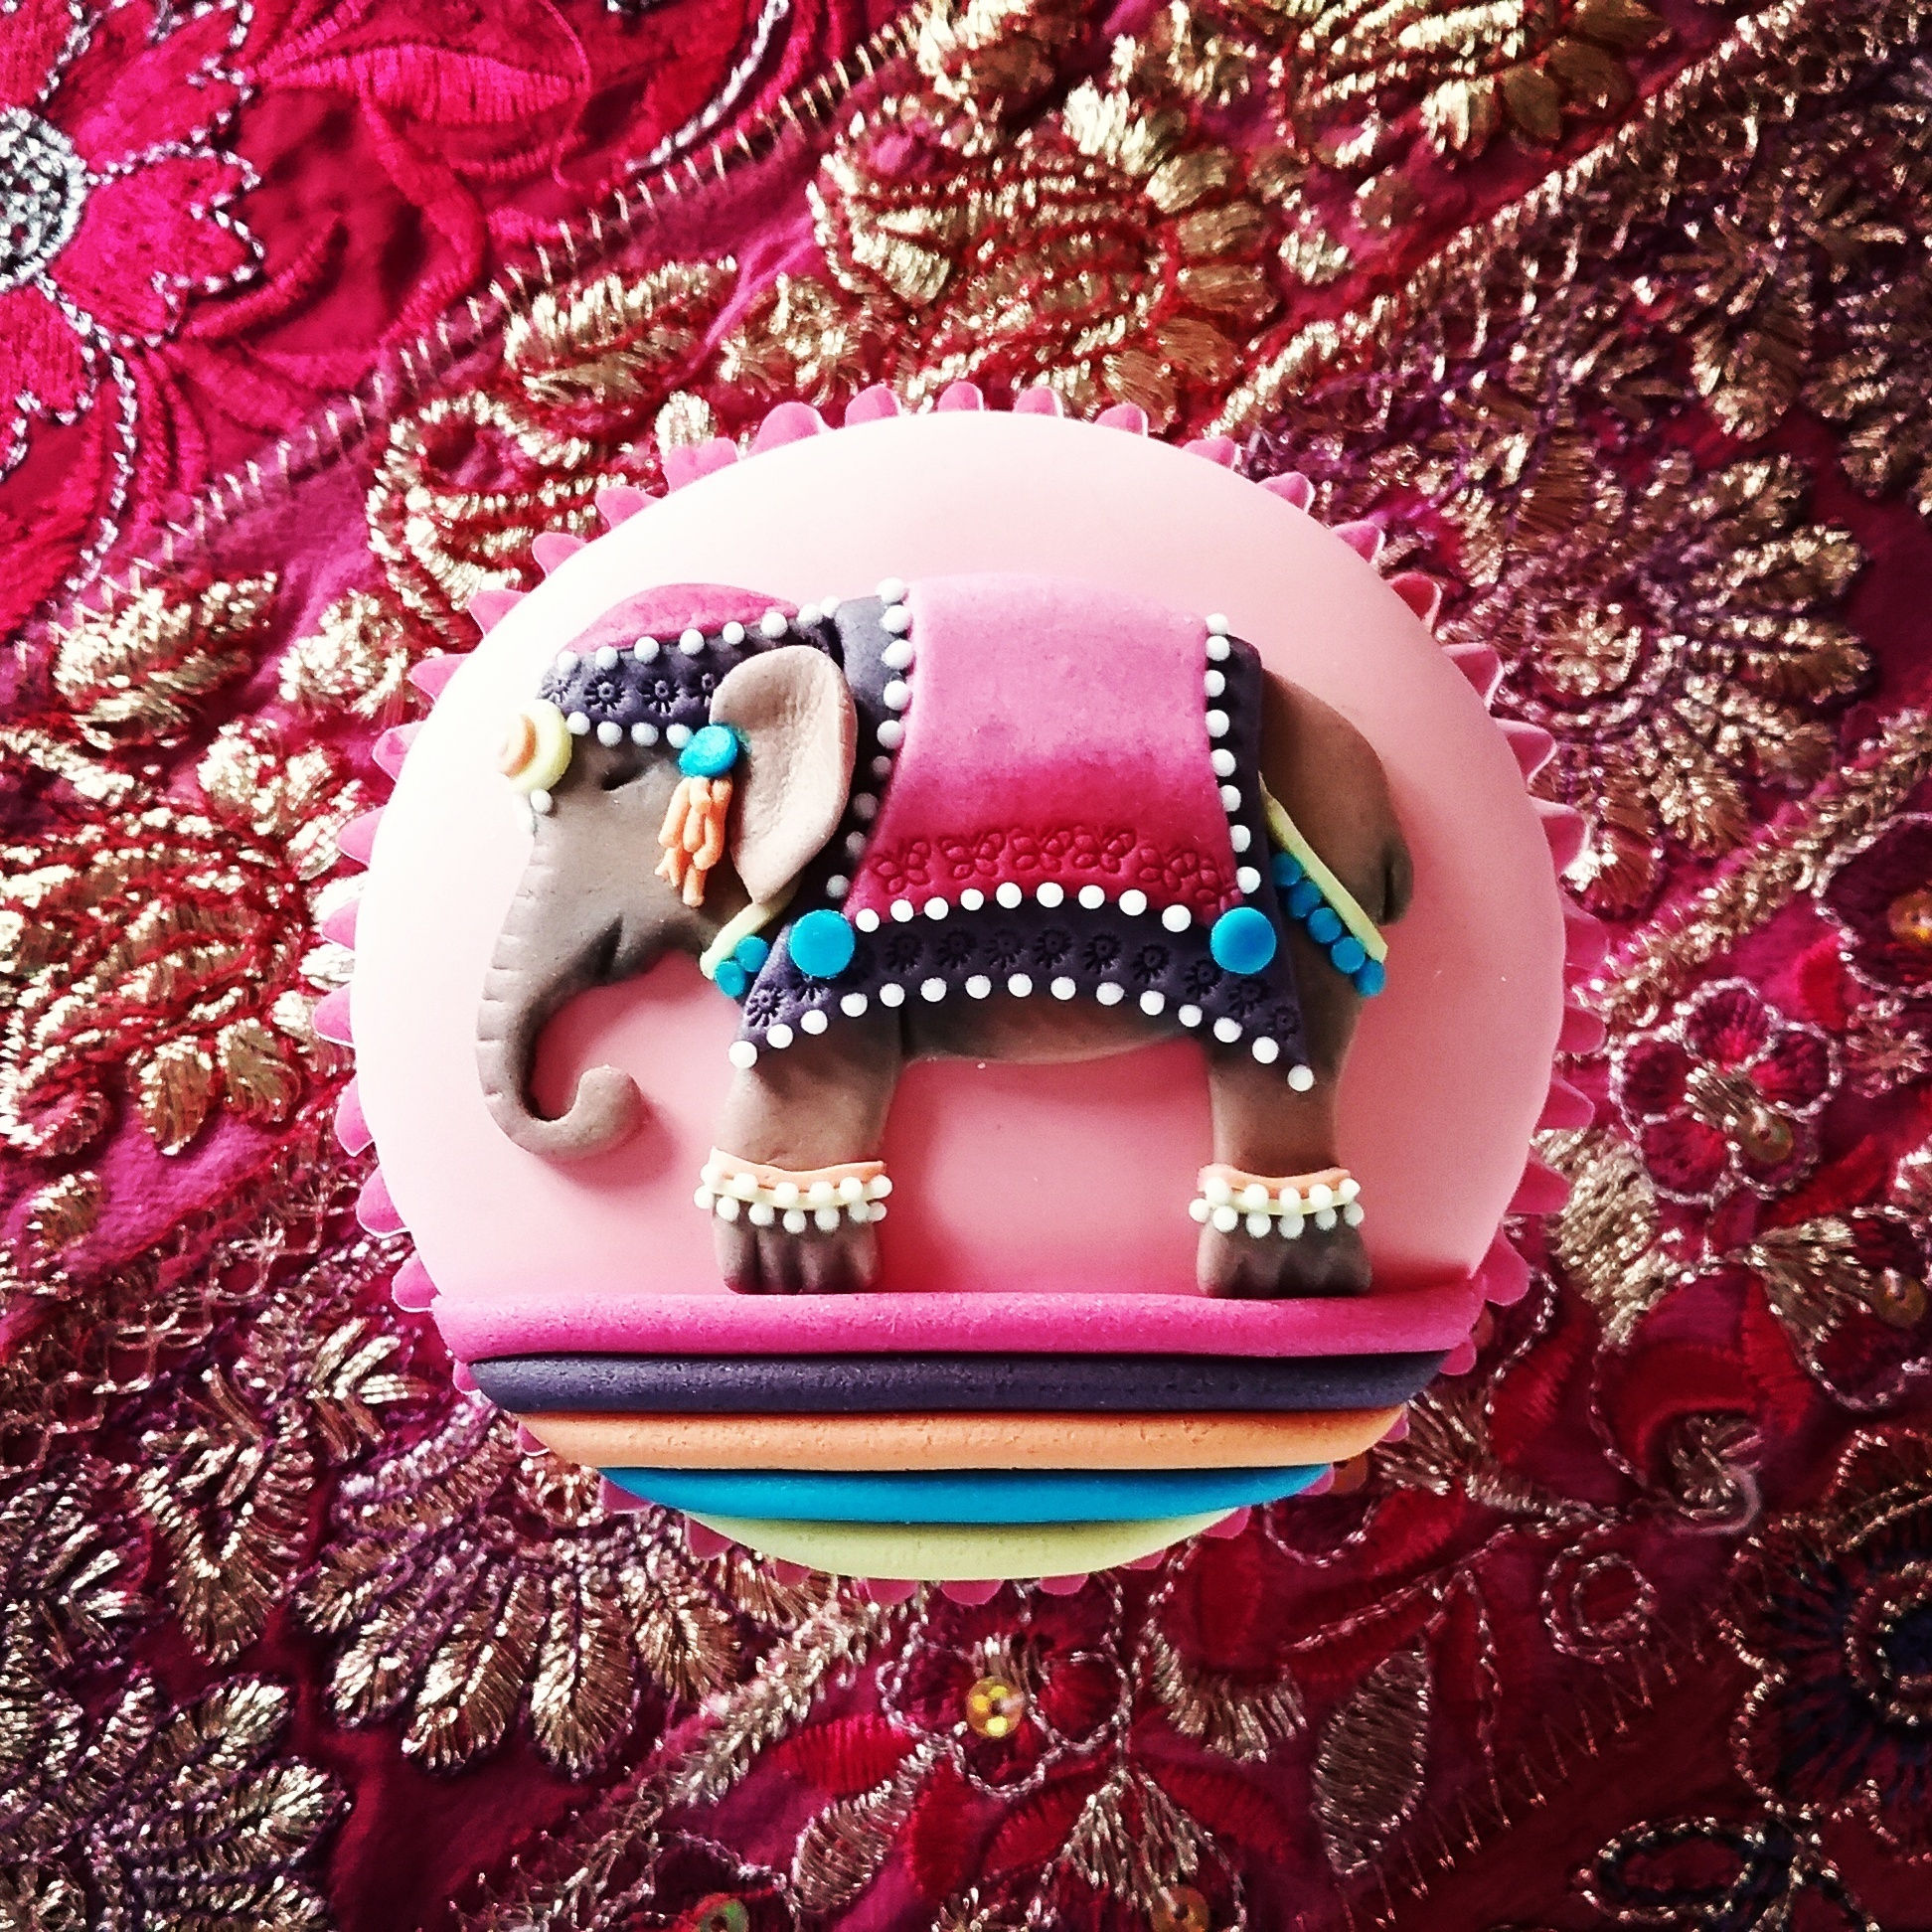 Asian elephant cupcake - embossing and cutter skills